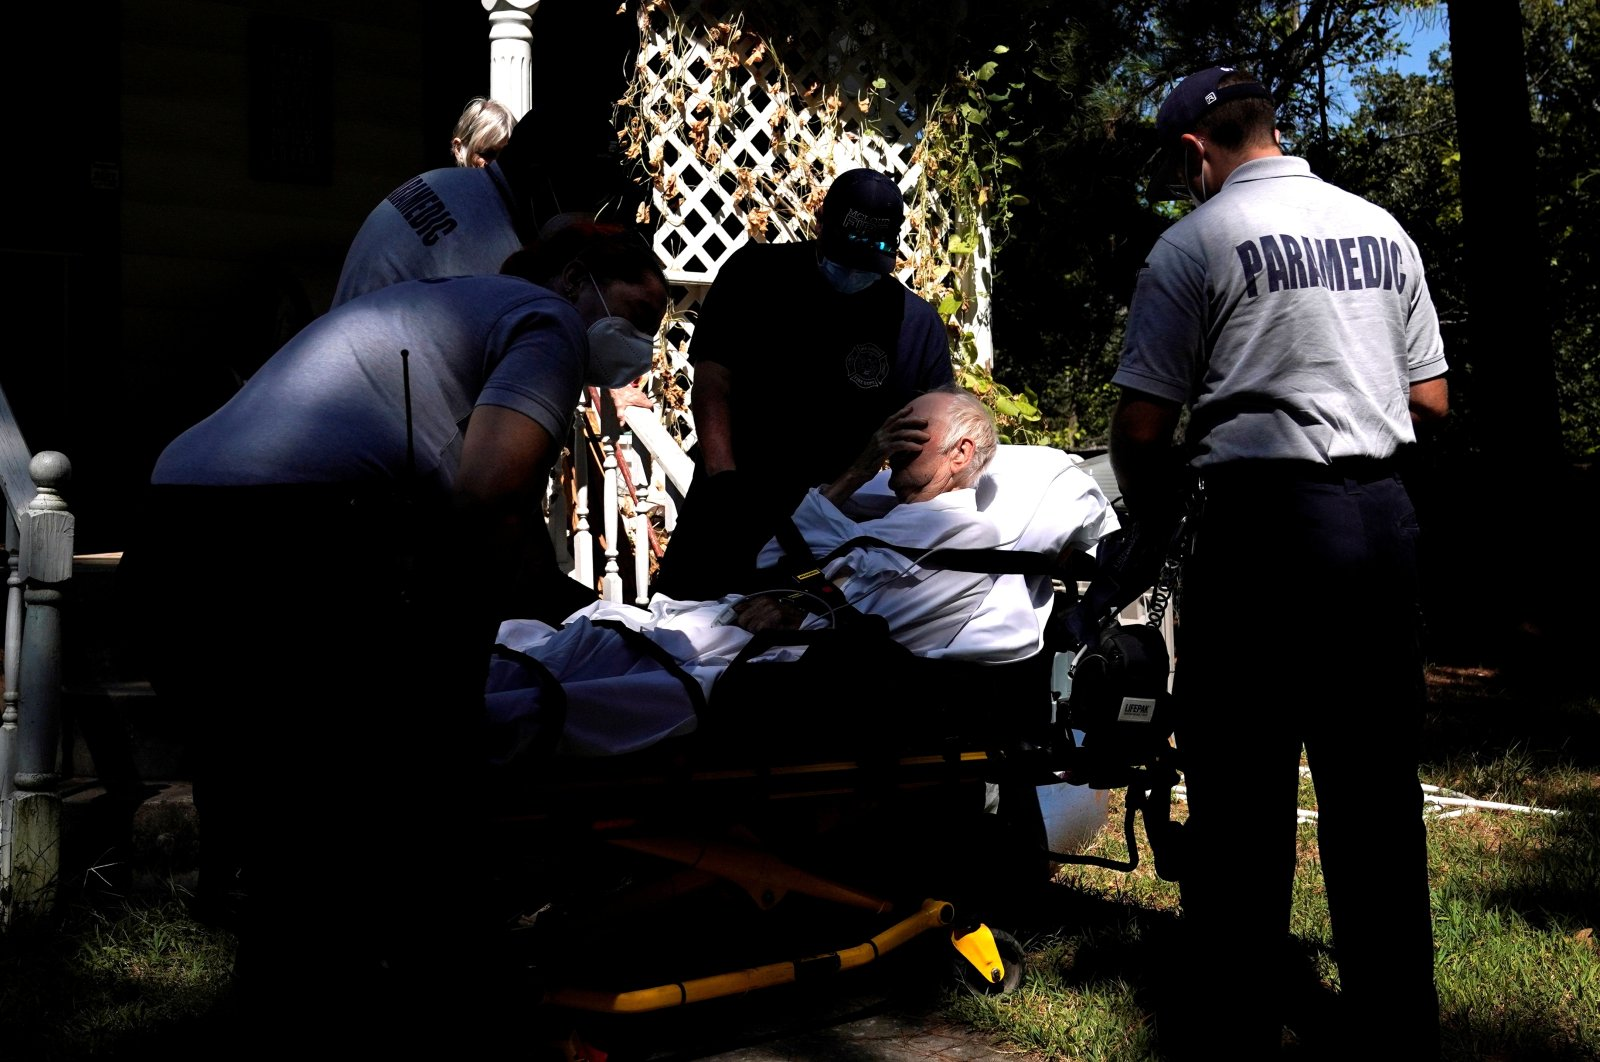 Paramedics prepare to transport a man suffering from possible COVID-19 symptoms in McLoud, Oklahoma, U.S., Sept. 8, 2021. (Reuters Photo)